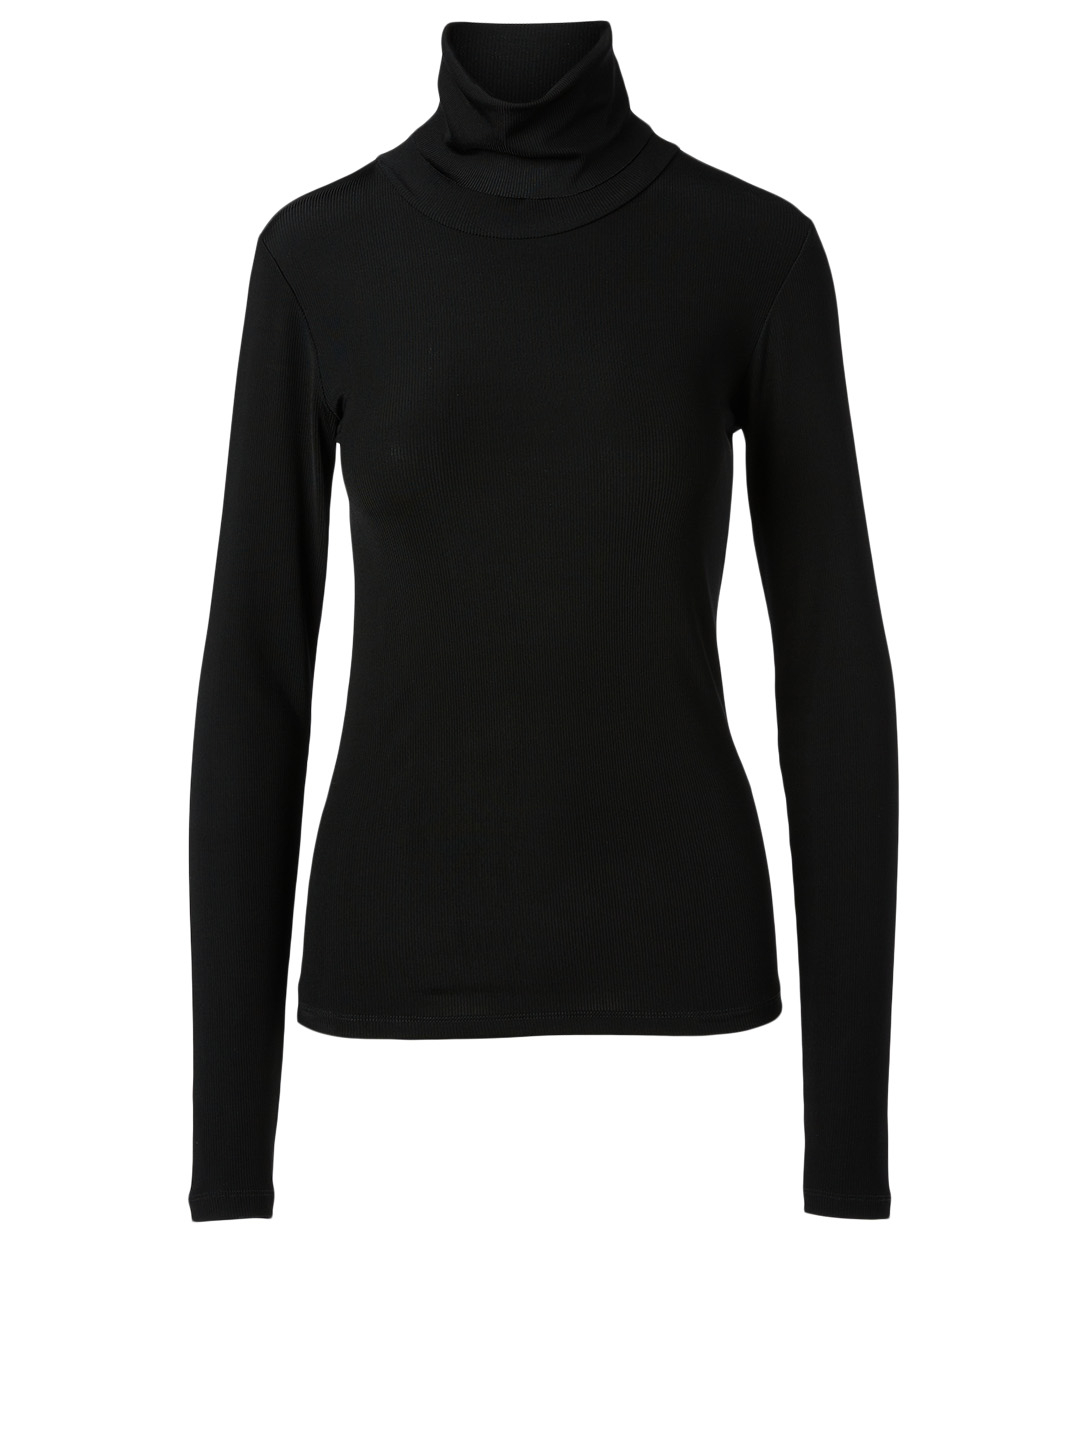 BIRGITTE HERSKIND Bea Turtleneck Knit Top Women's Black